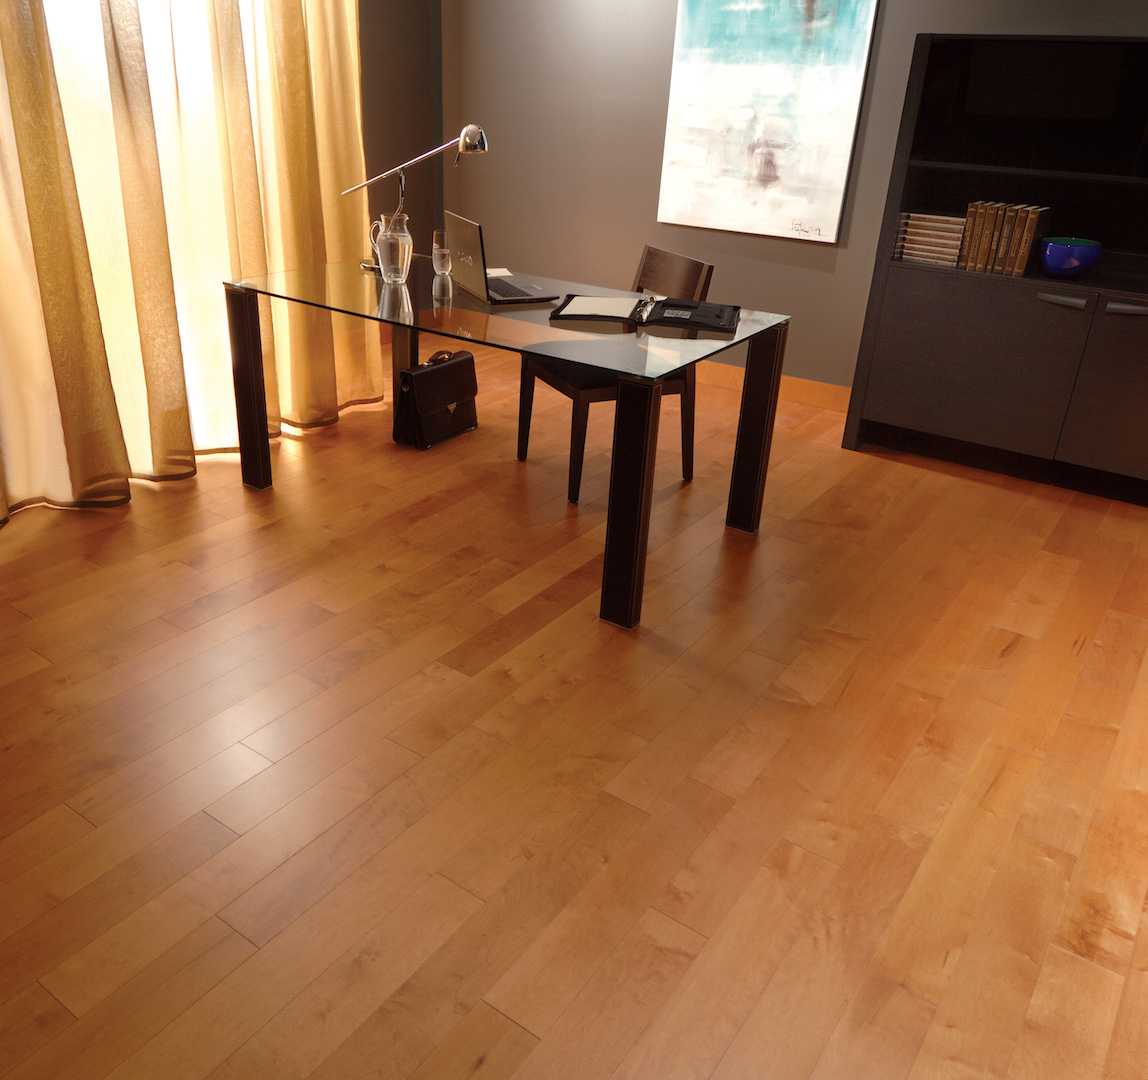 Vinyl Flooring Or Linoleum Floors Tampa Flooring Company